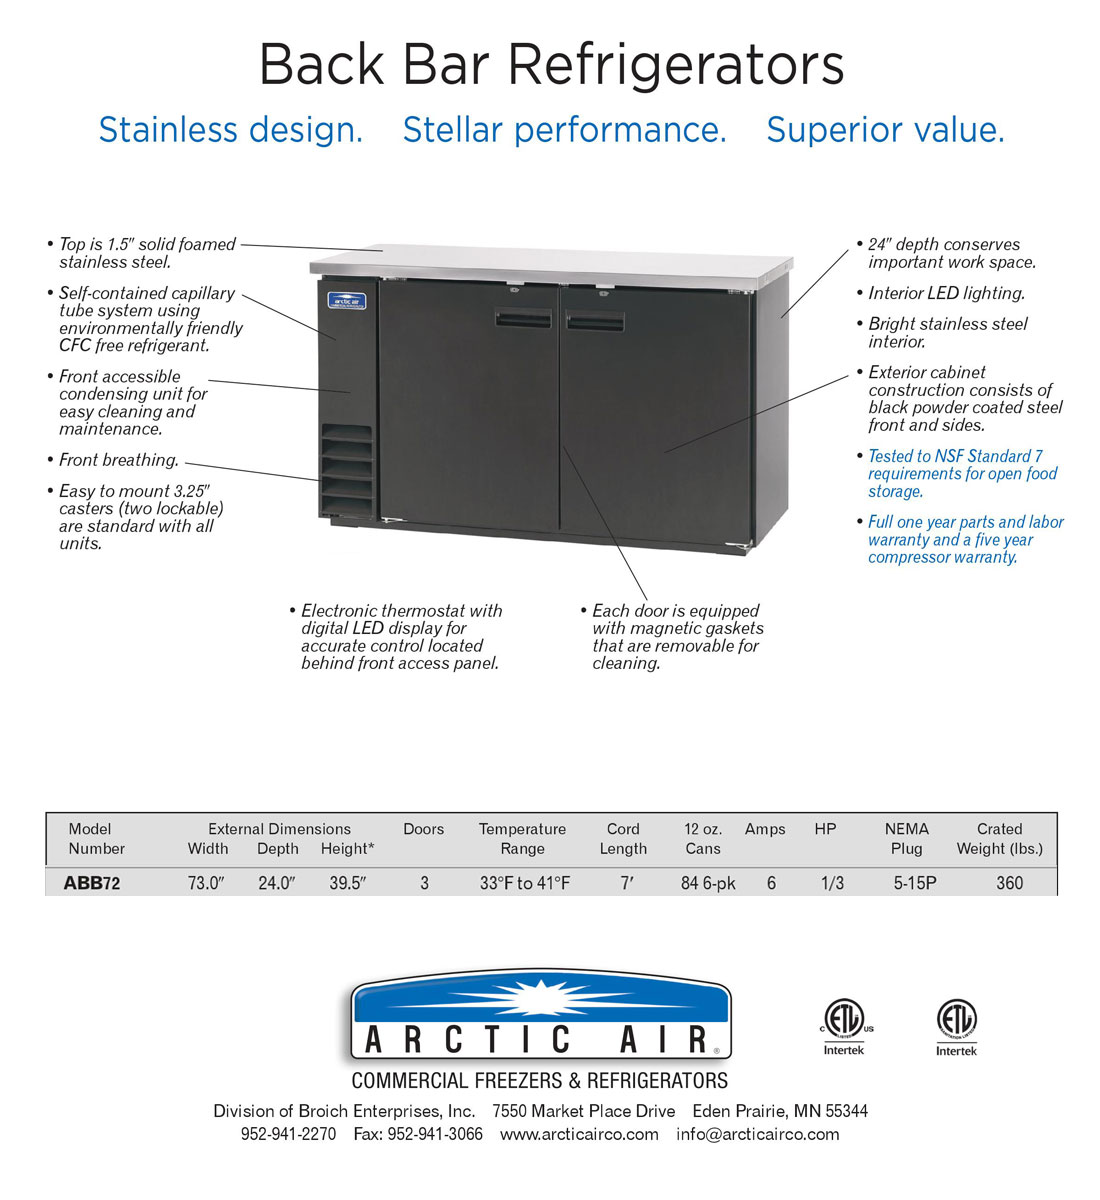 73 Inch Wide Back Bar Refrigerator with 3 Solid Doors and Stainless Steel Top (Arctic Air ABB72) Specification Image